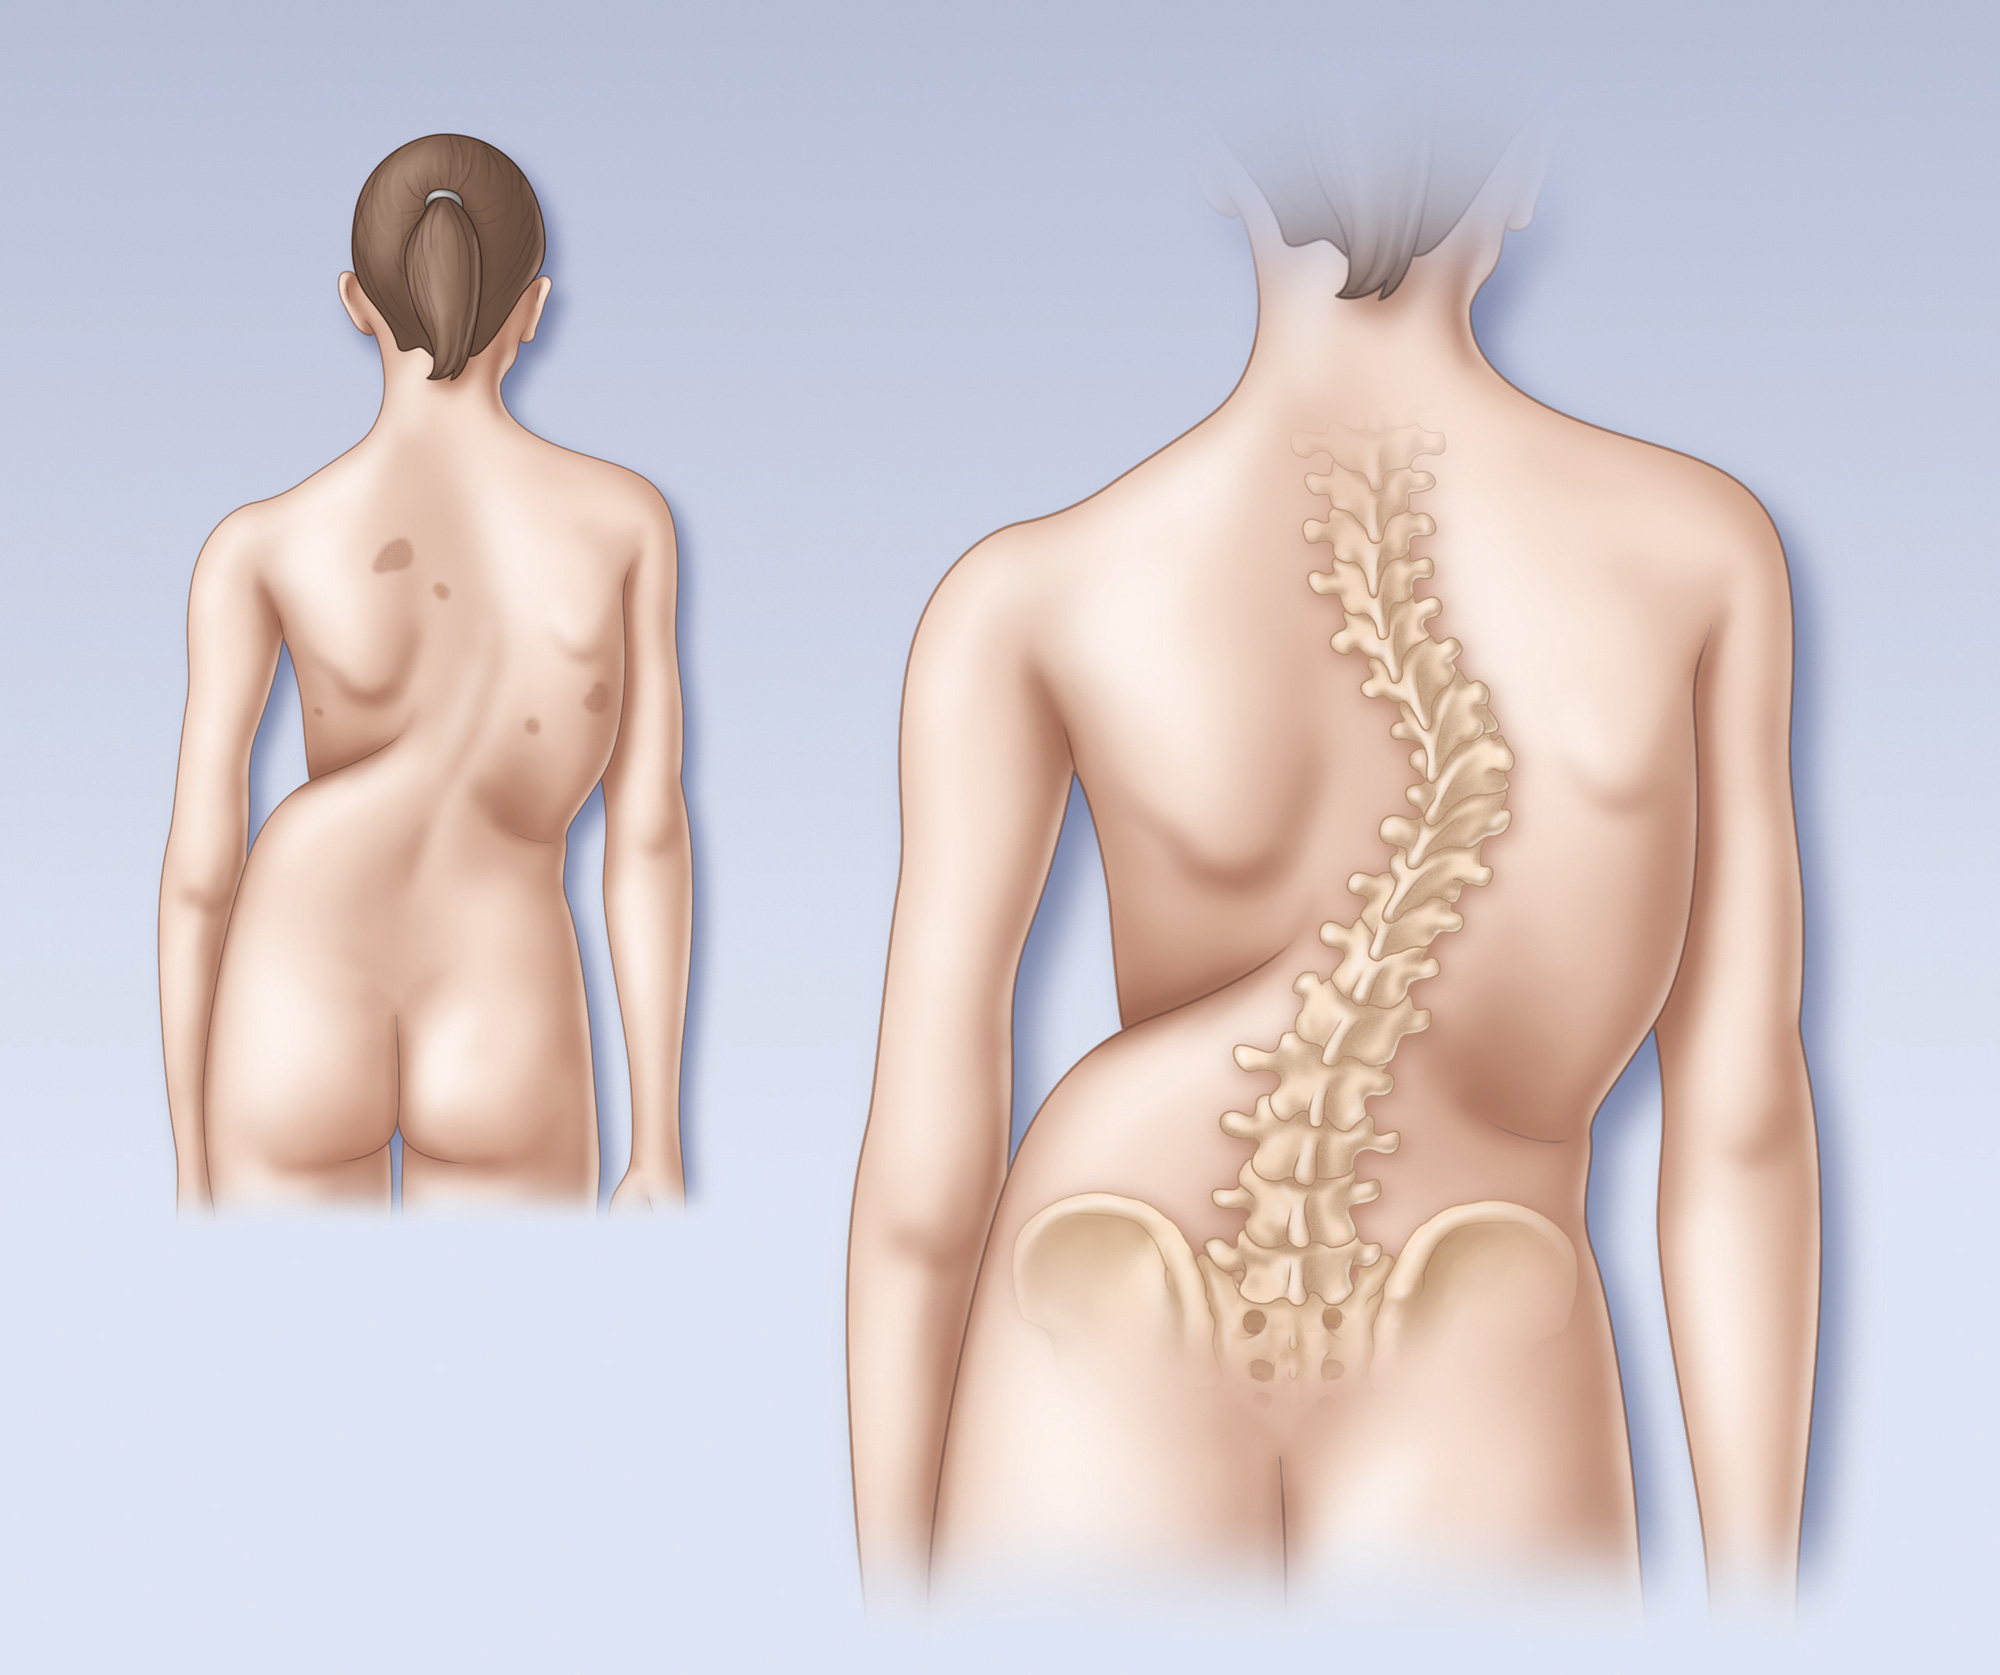 Scoliosis spine posterior view